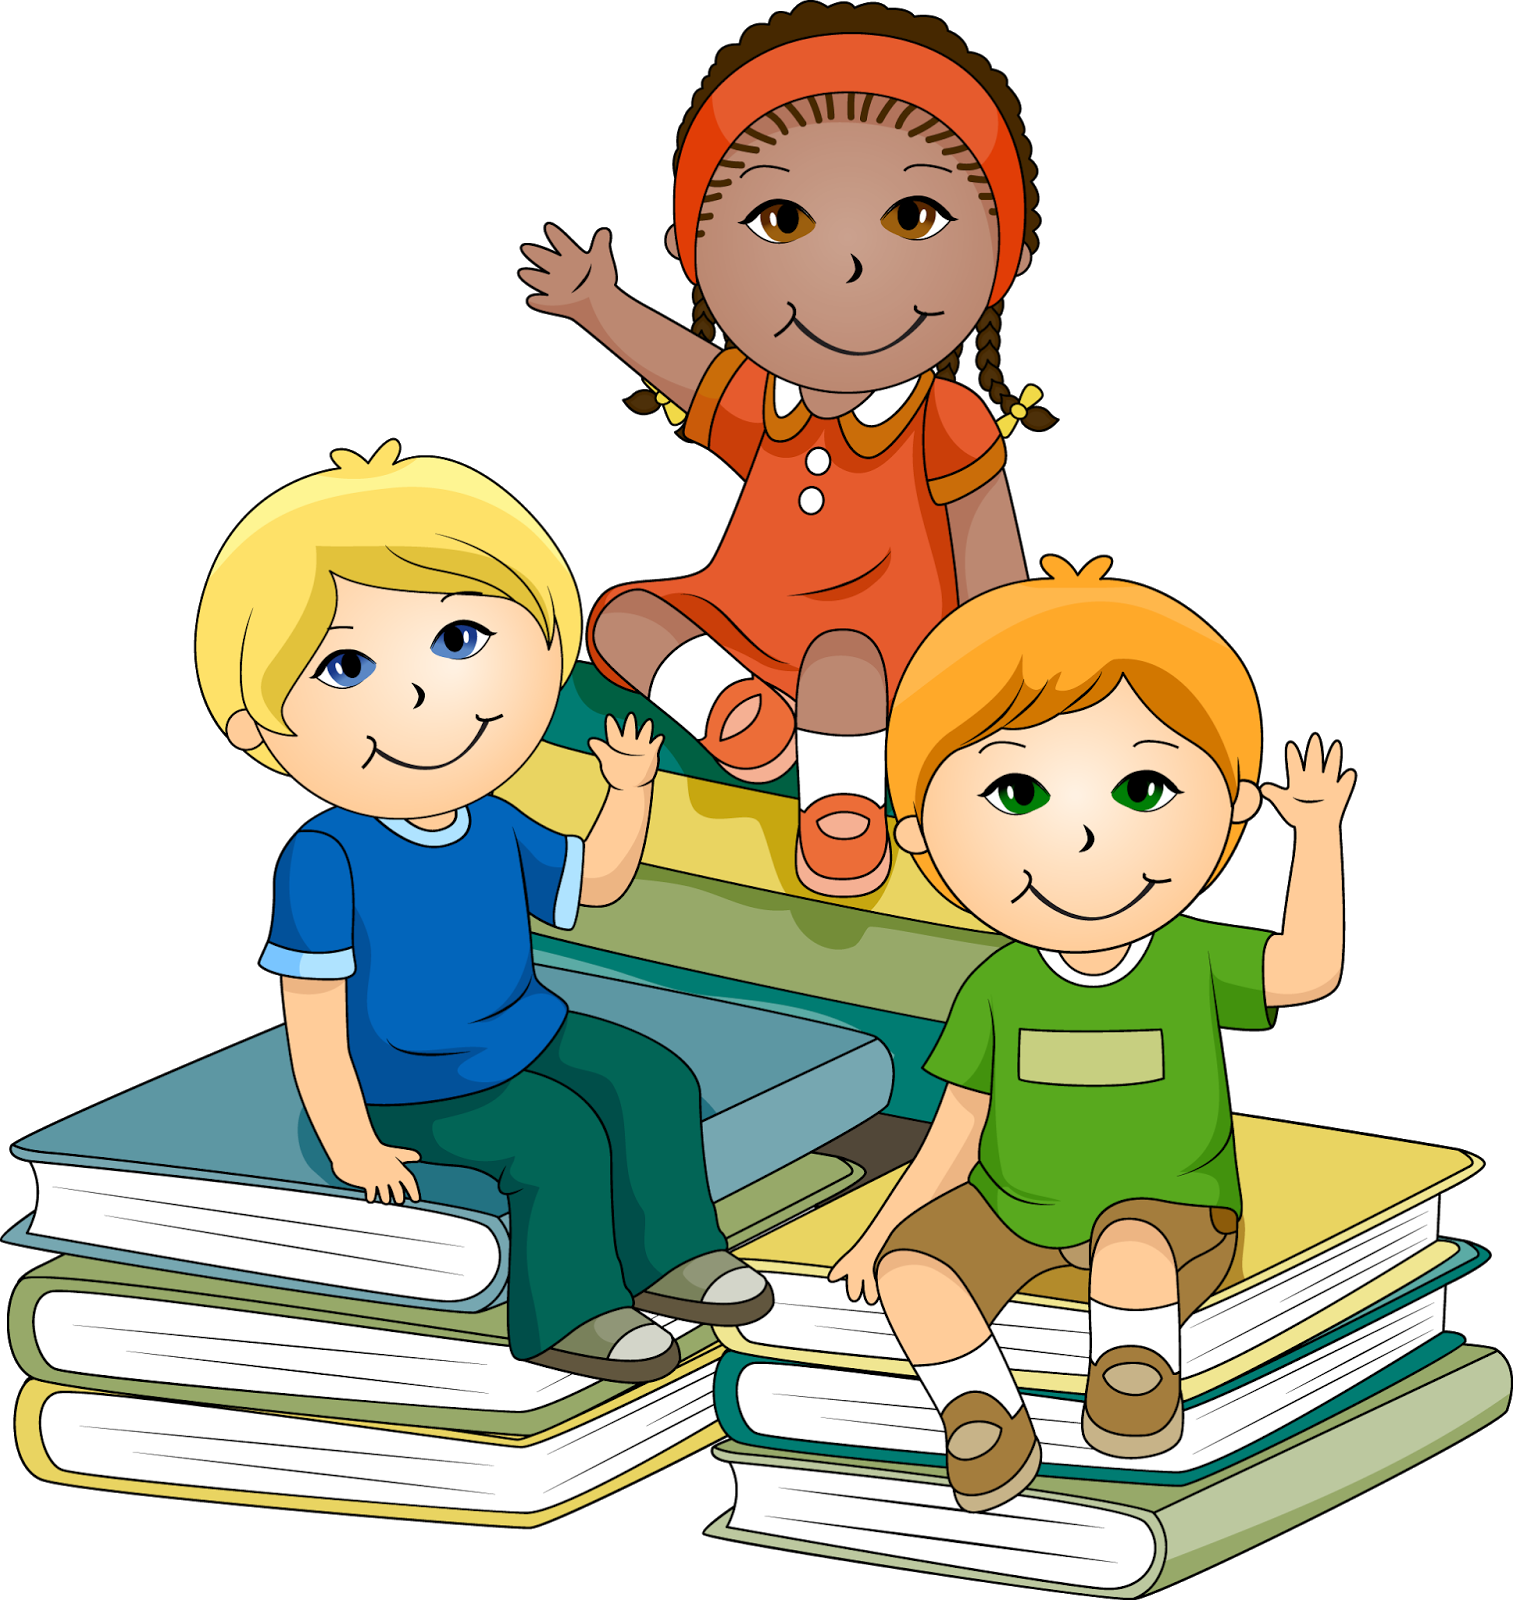 Classic childrens book clipart image freeuse stock Know Your Books: March 2014 image freeuse stock